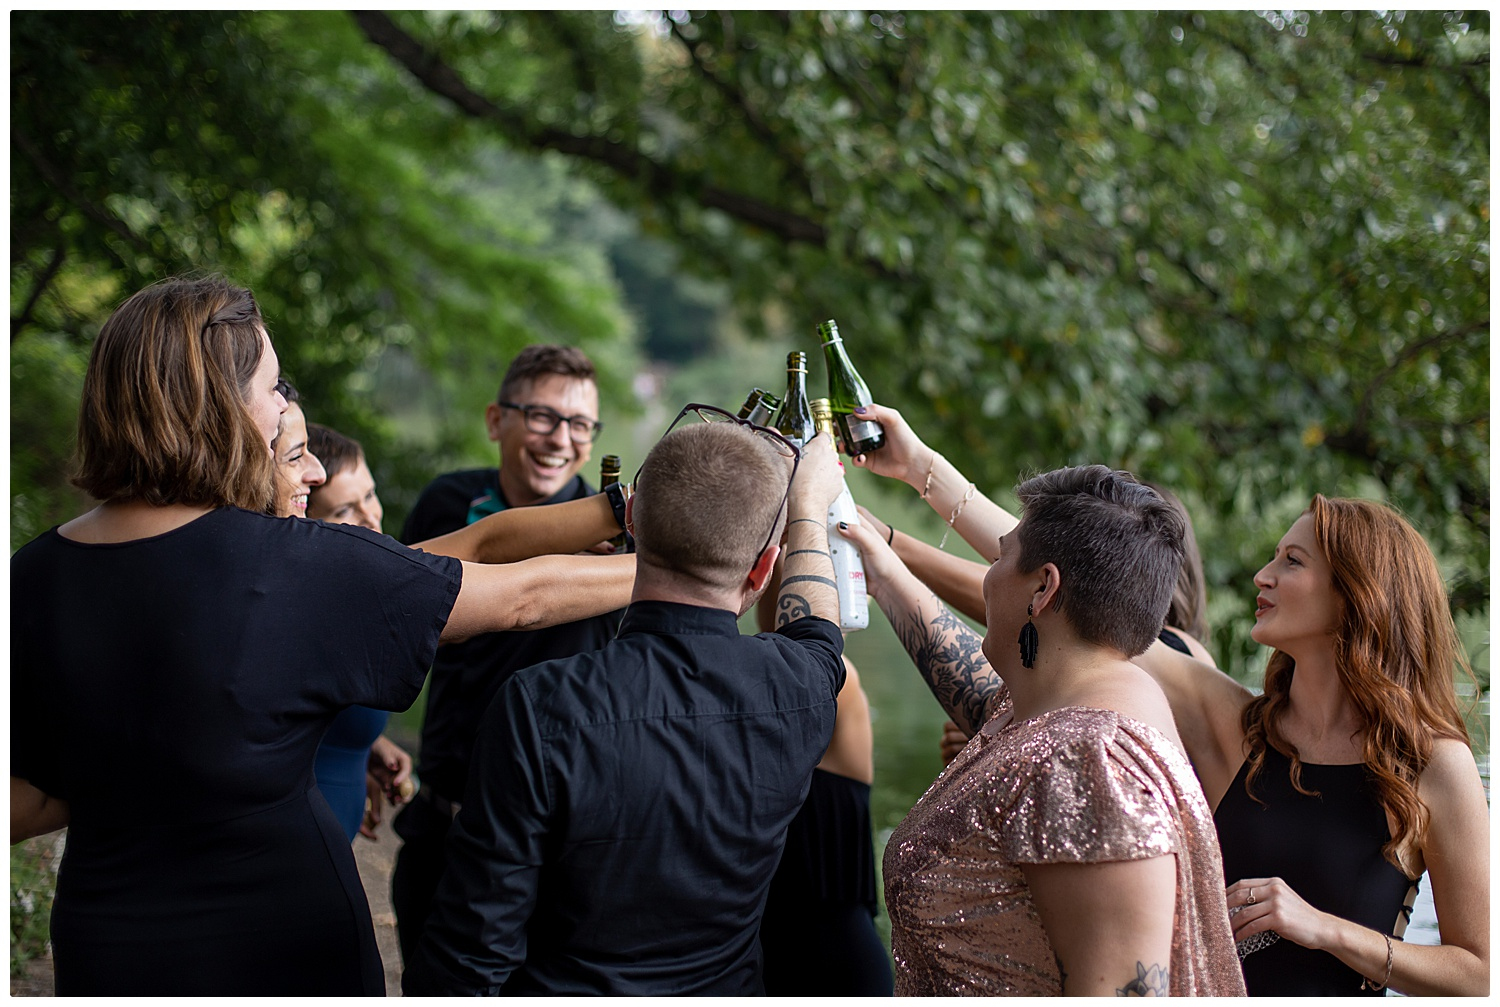 Kate-Alison-Photography-NYC-Central-Park-Elopement_0026.jpg